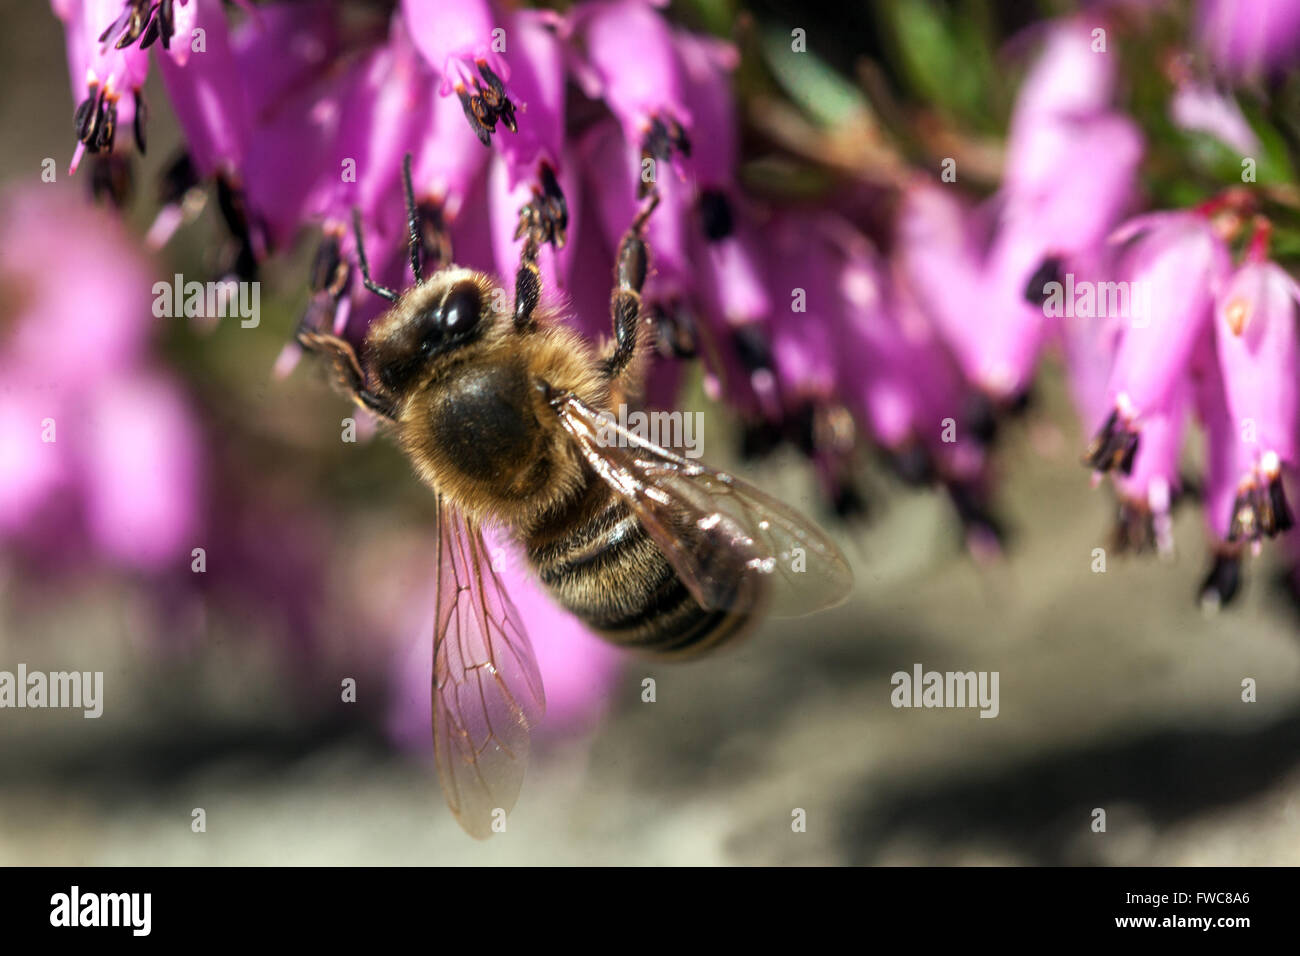 Flowering Erica carnea Winter Heath and pollinating bee on a flower - Stock Image